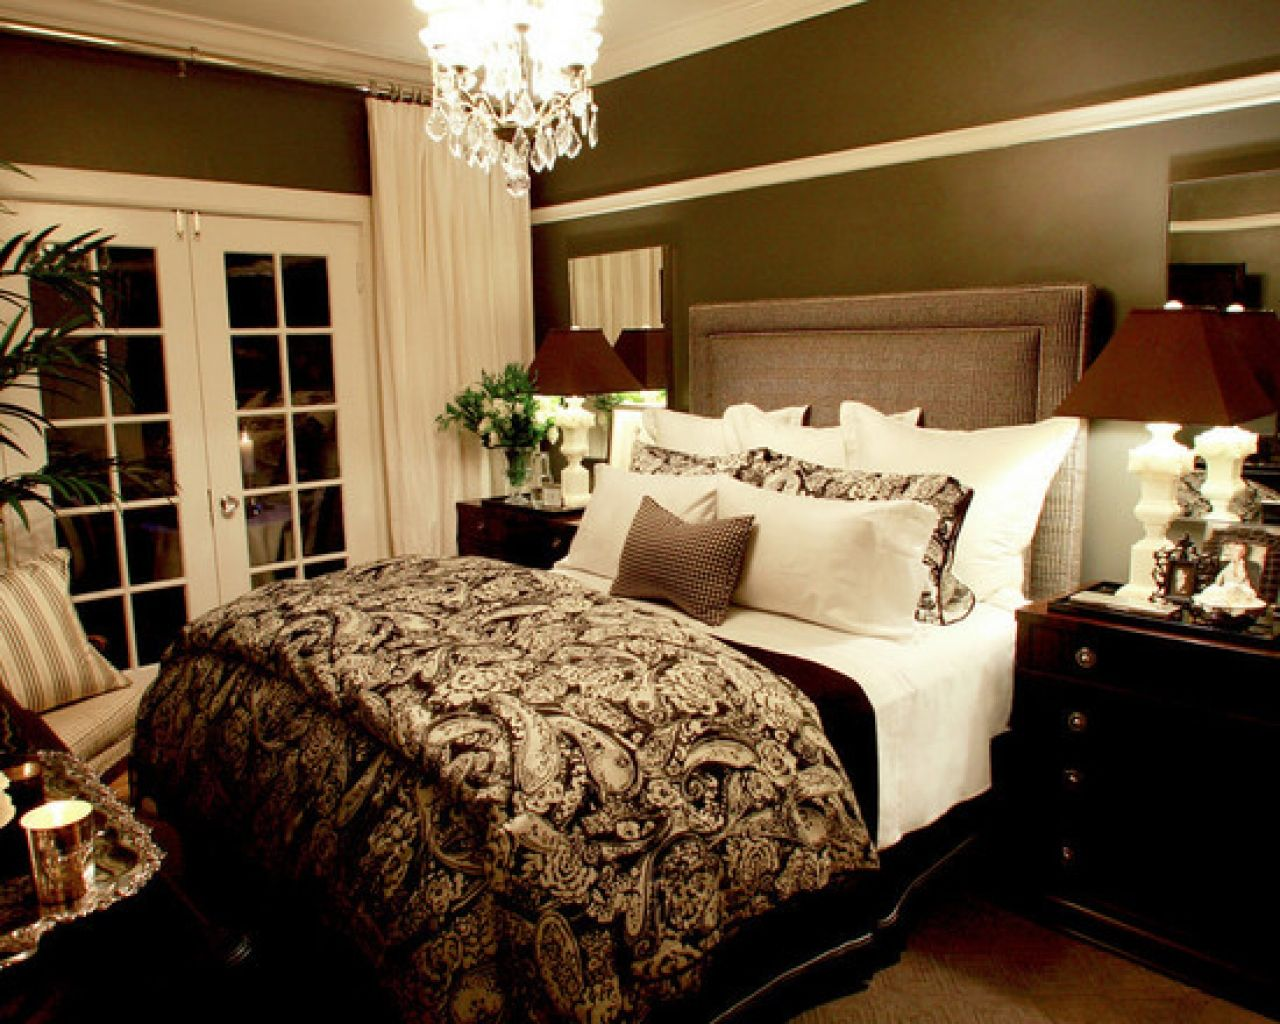 romantic bedroom design pictures remodel decor and ideas on dreamy luxurious master bedroom designs and decor ideas id=57243